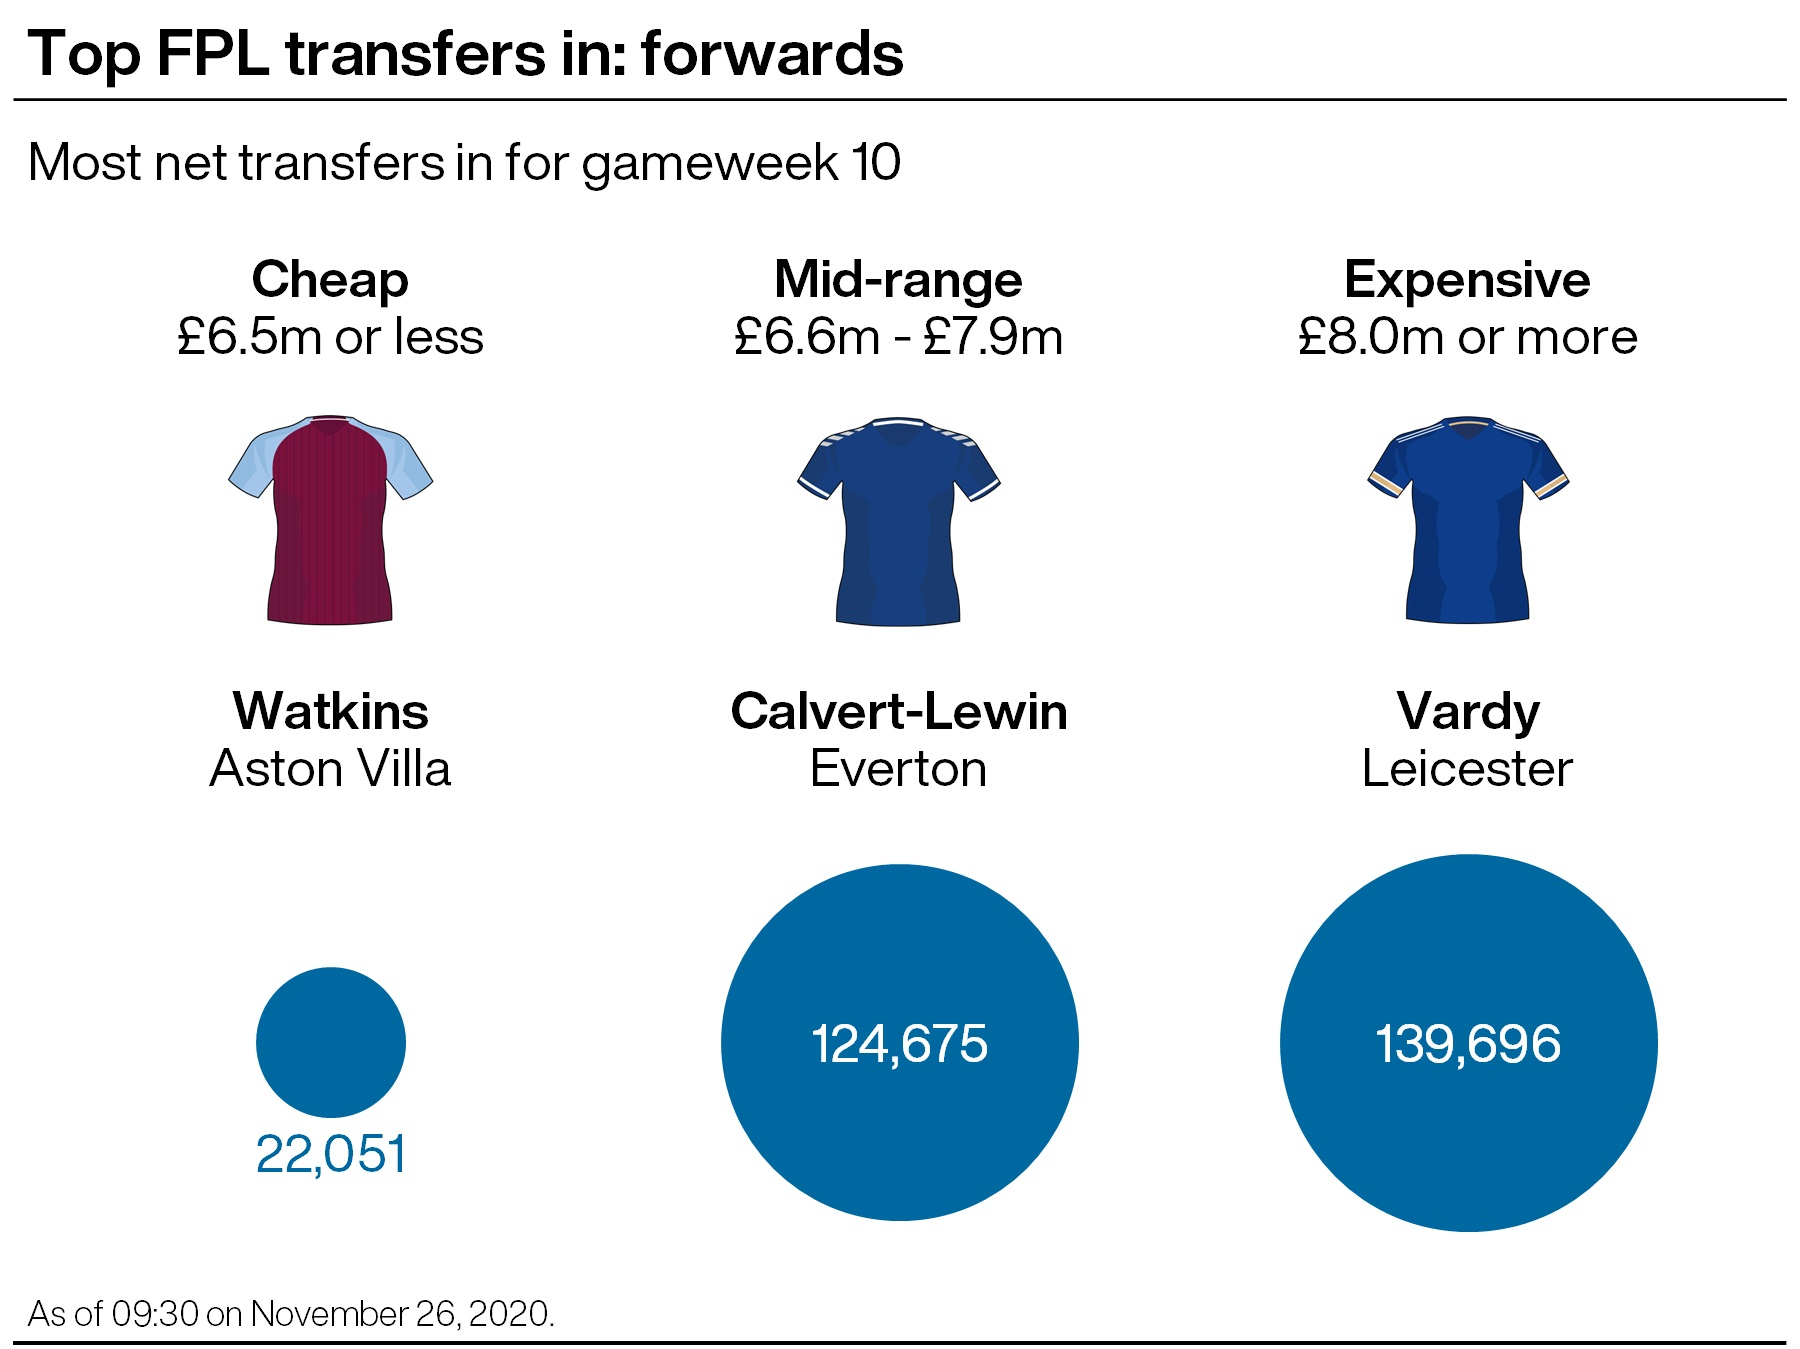 A graphic showing which Premier League forwards were the most transferred in ahead of gameweek 10 in the FPL